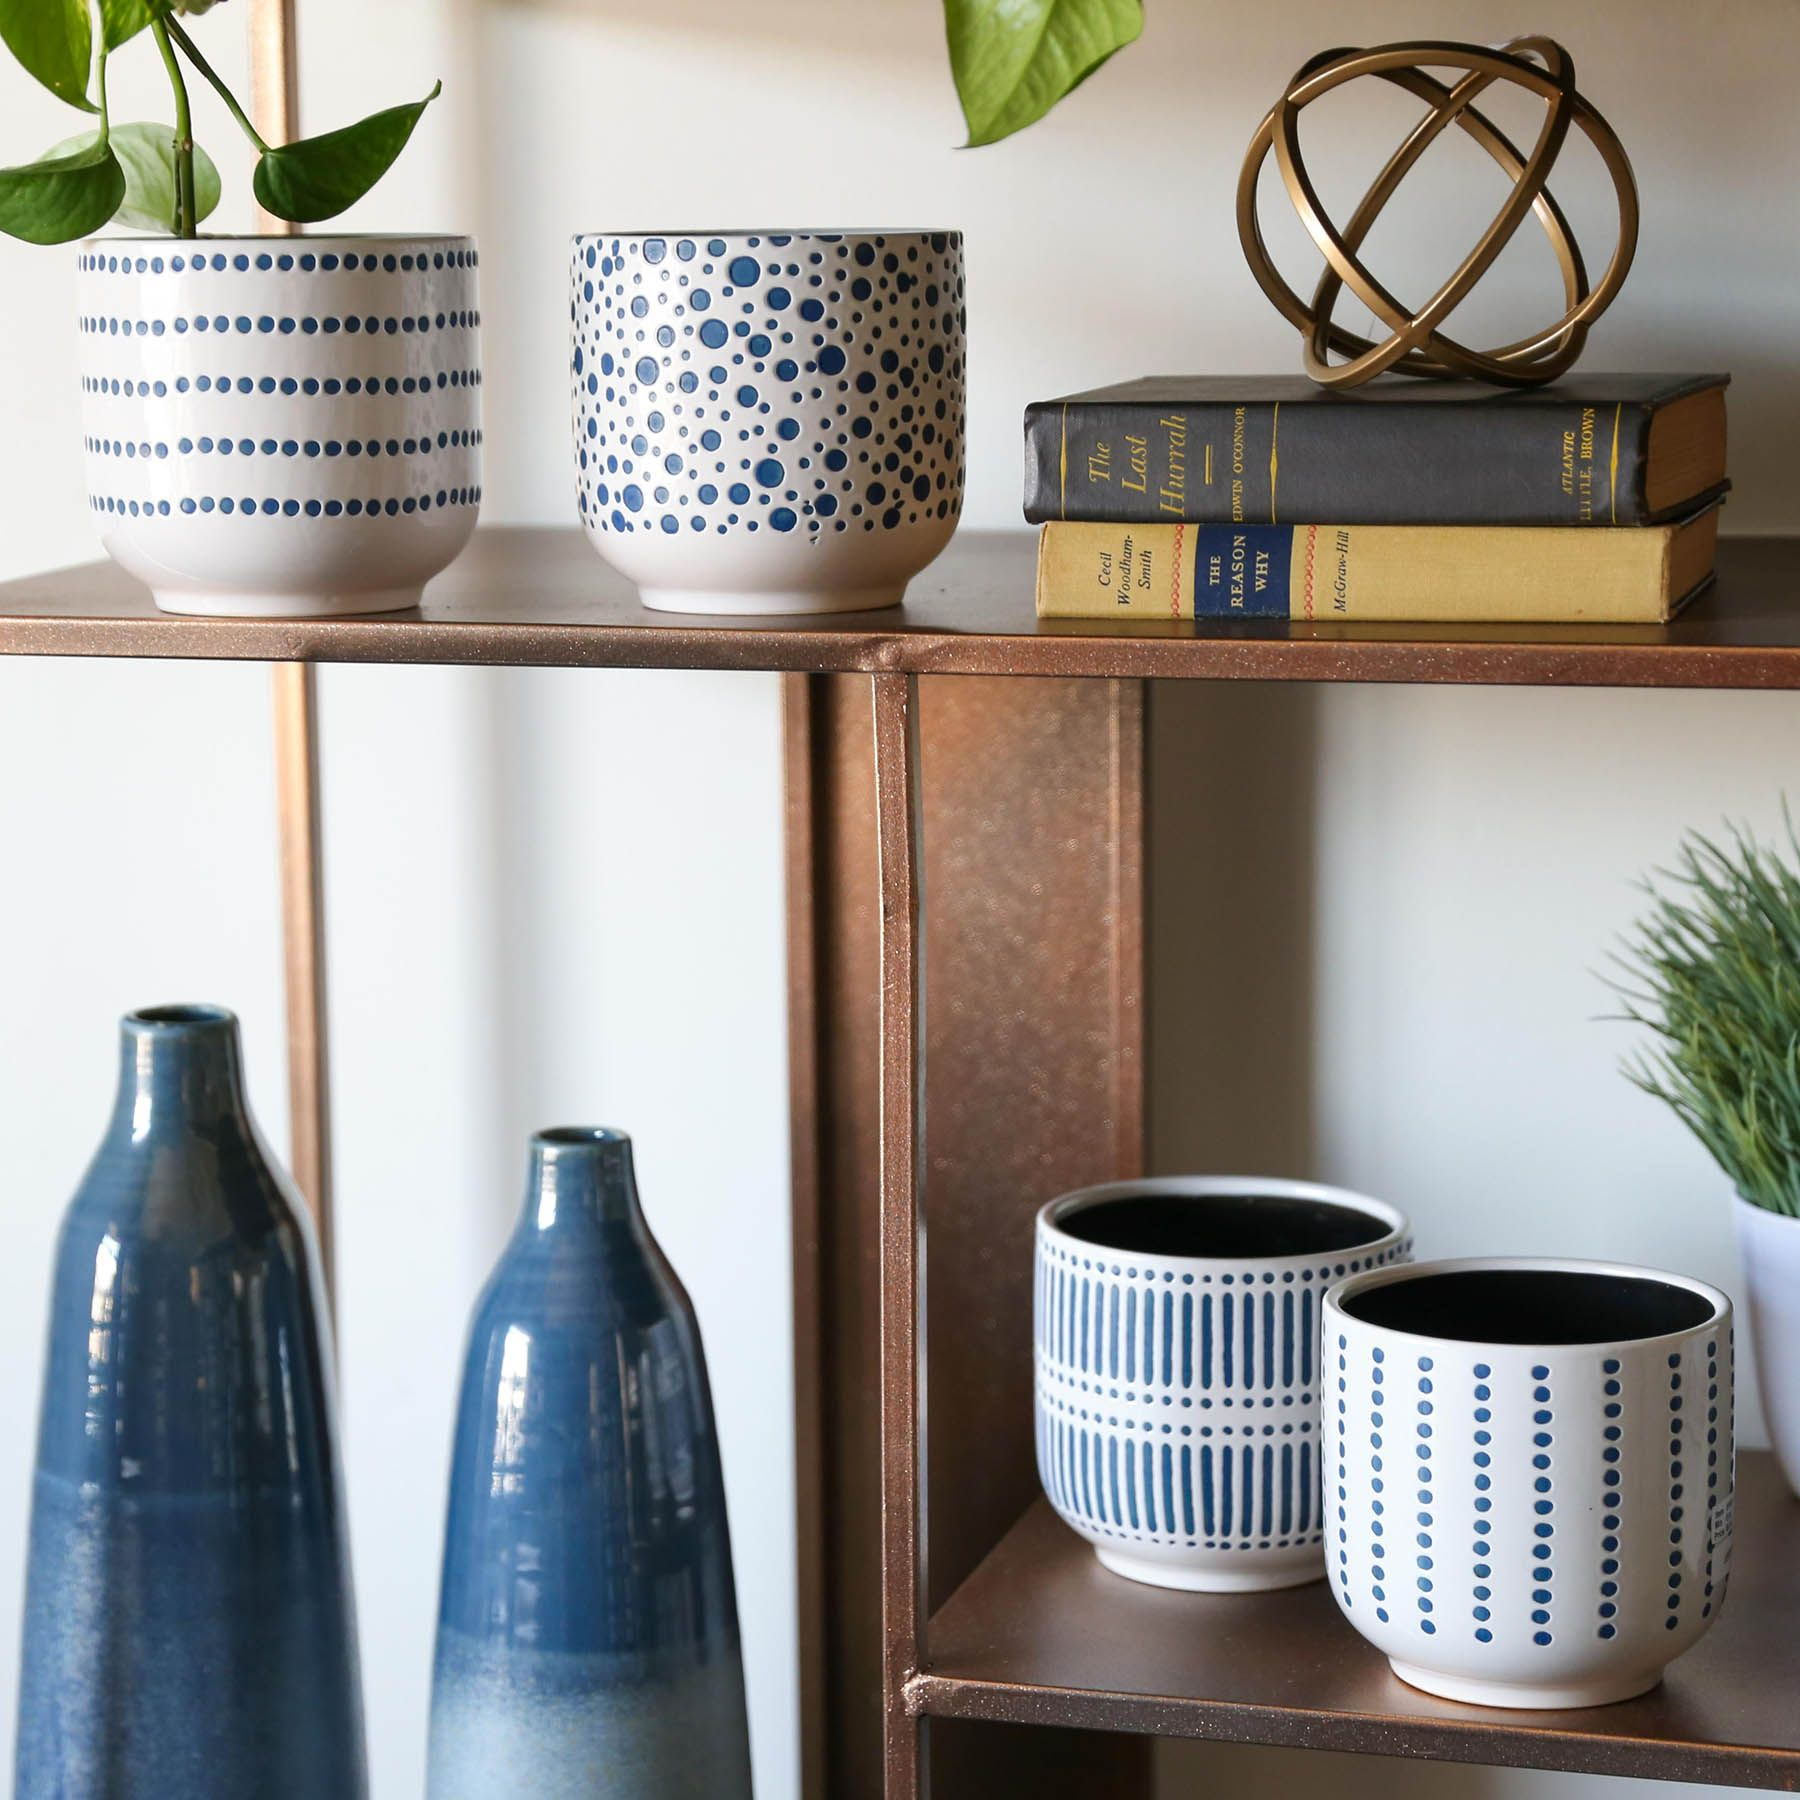 Home Staging Trends: If You're Not Ready To Take On Big Bold Patterns, Start